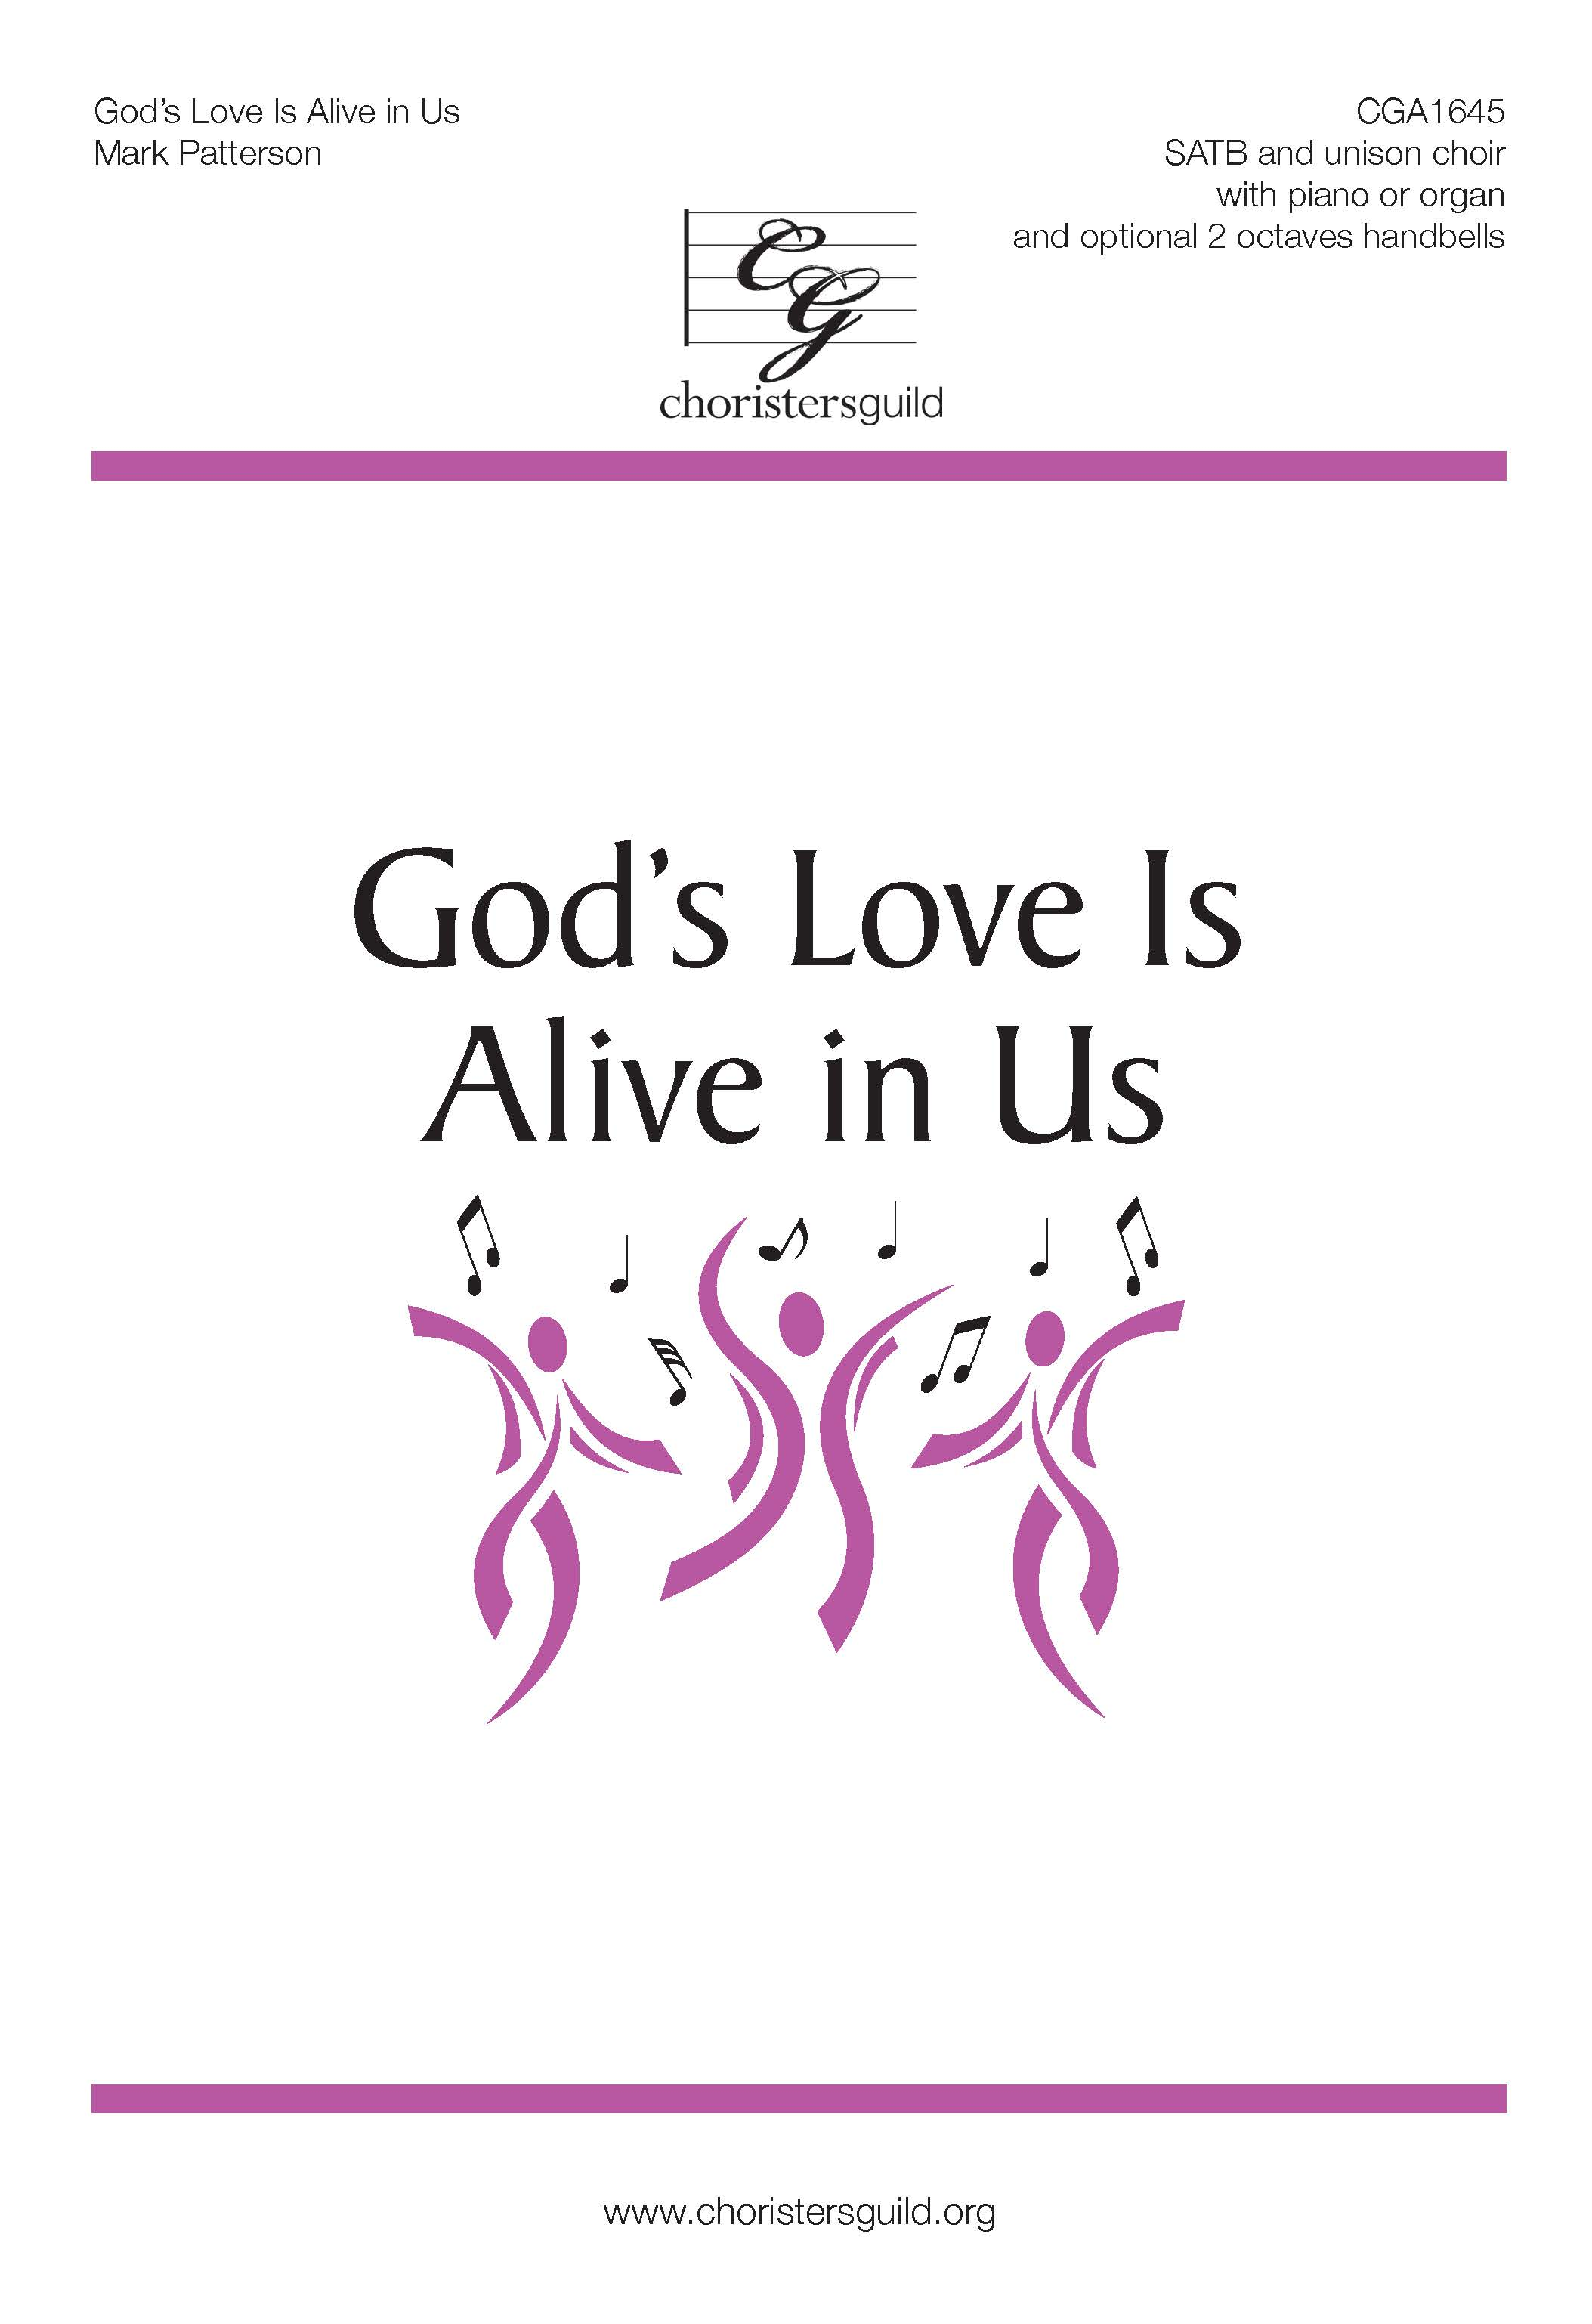 God's Love Is Alive in Us - SATB and unison choir